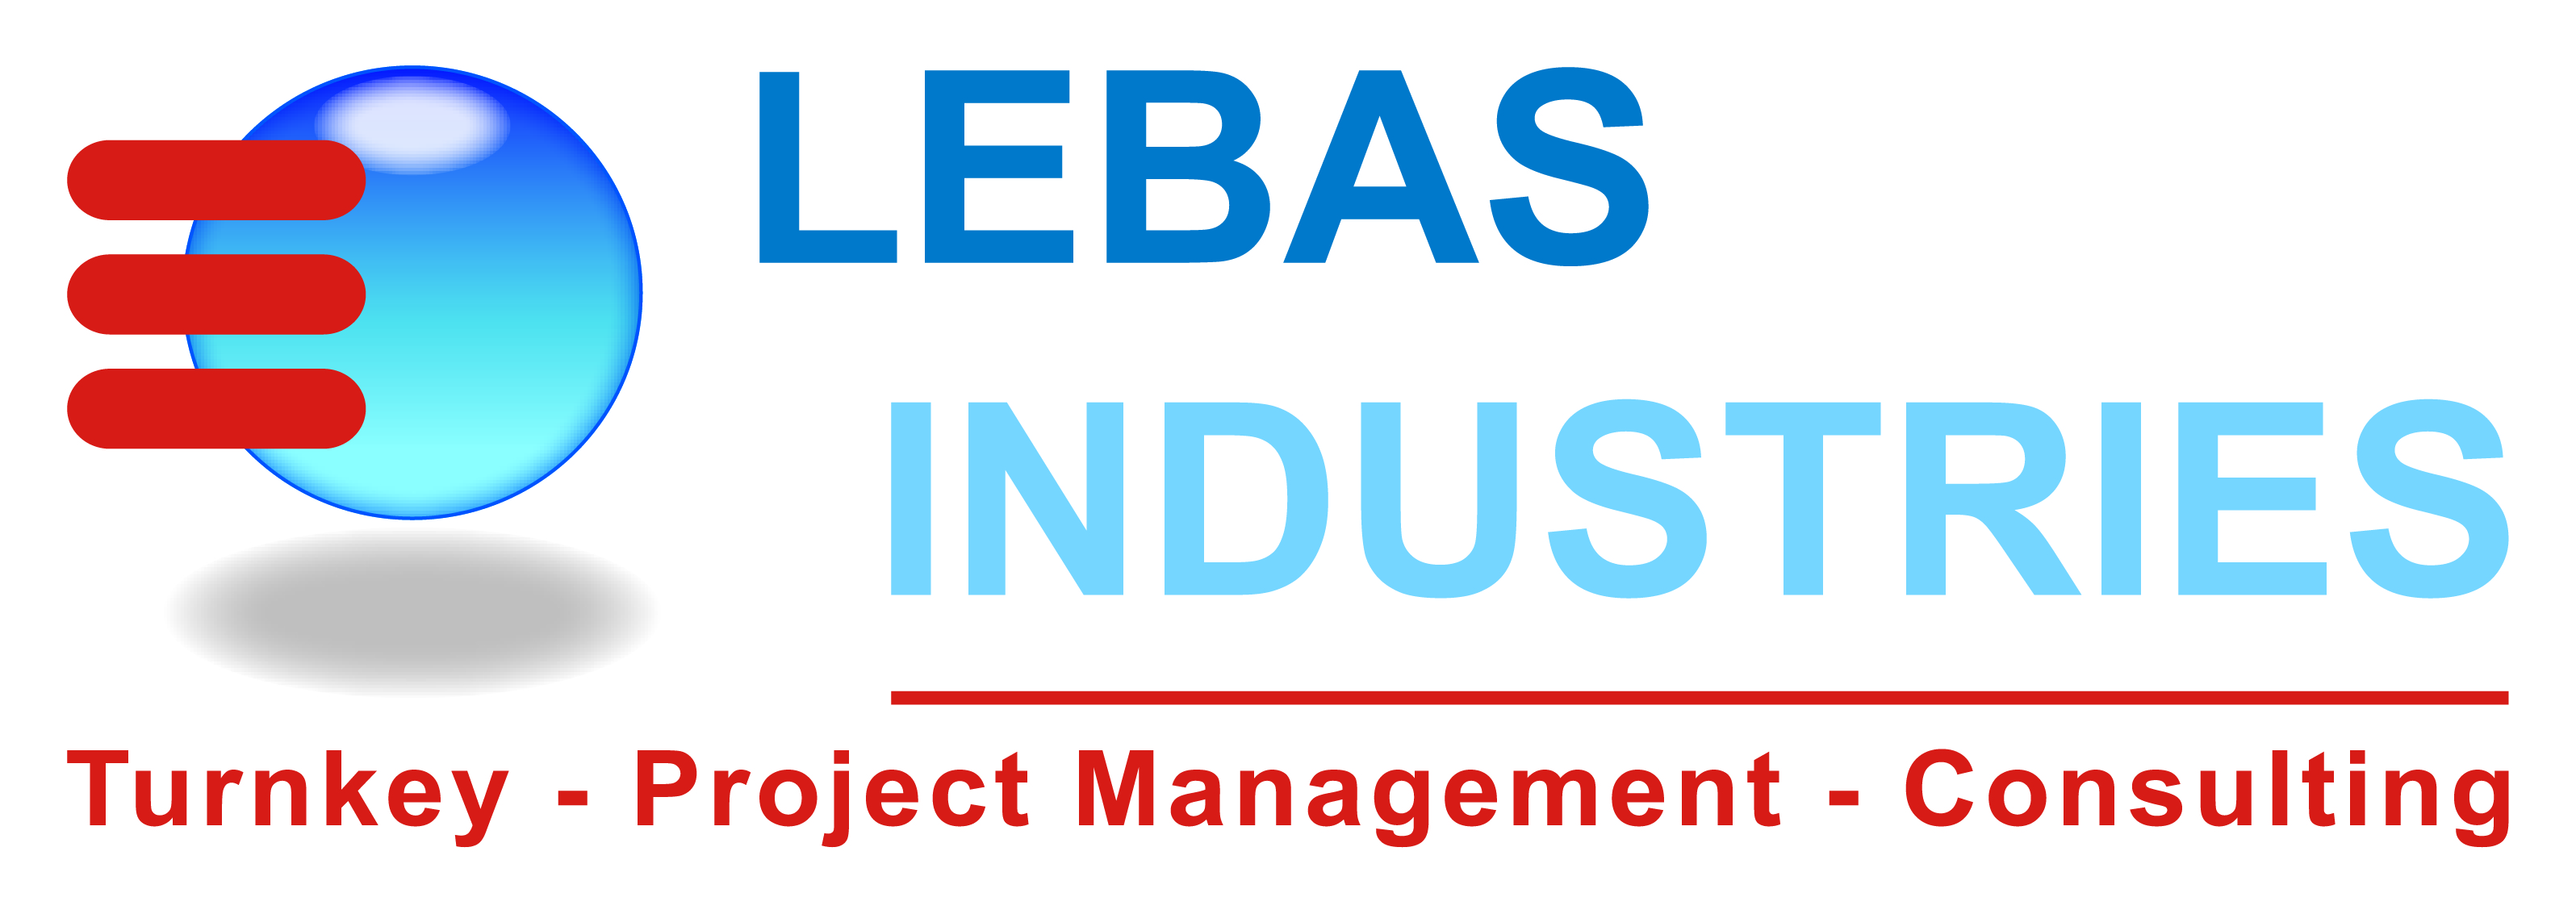 1578501350-lebas-industries-s-a-s.jpg